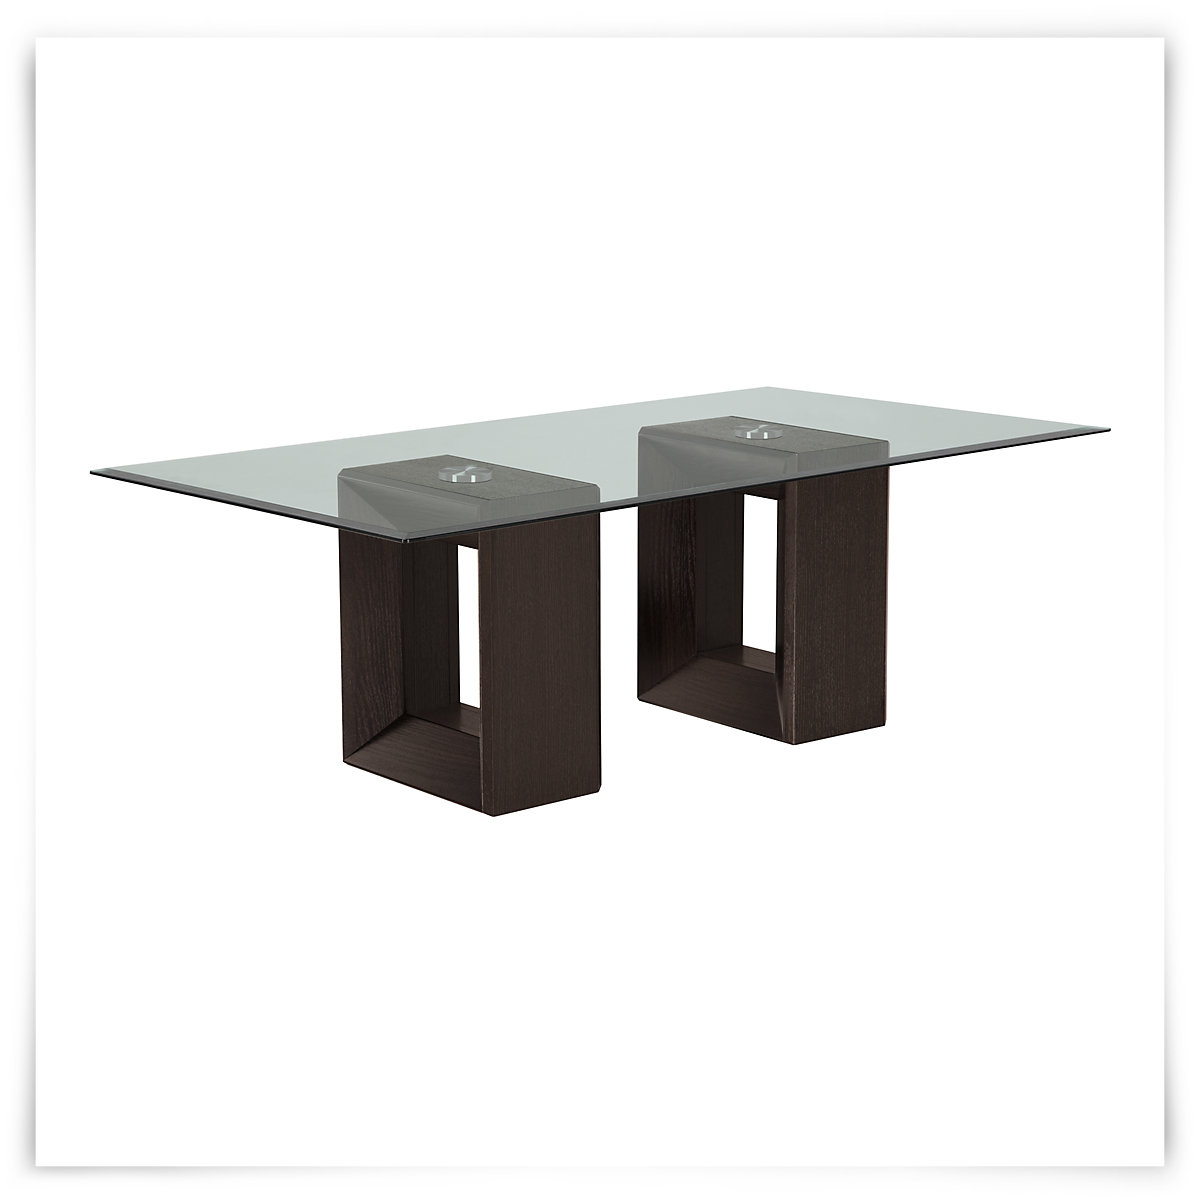 City Furniture Adele2 Dark Tone Glass Coffee Table